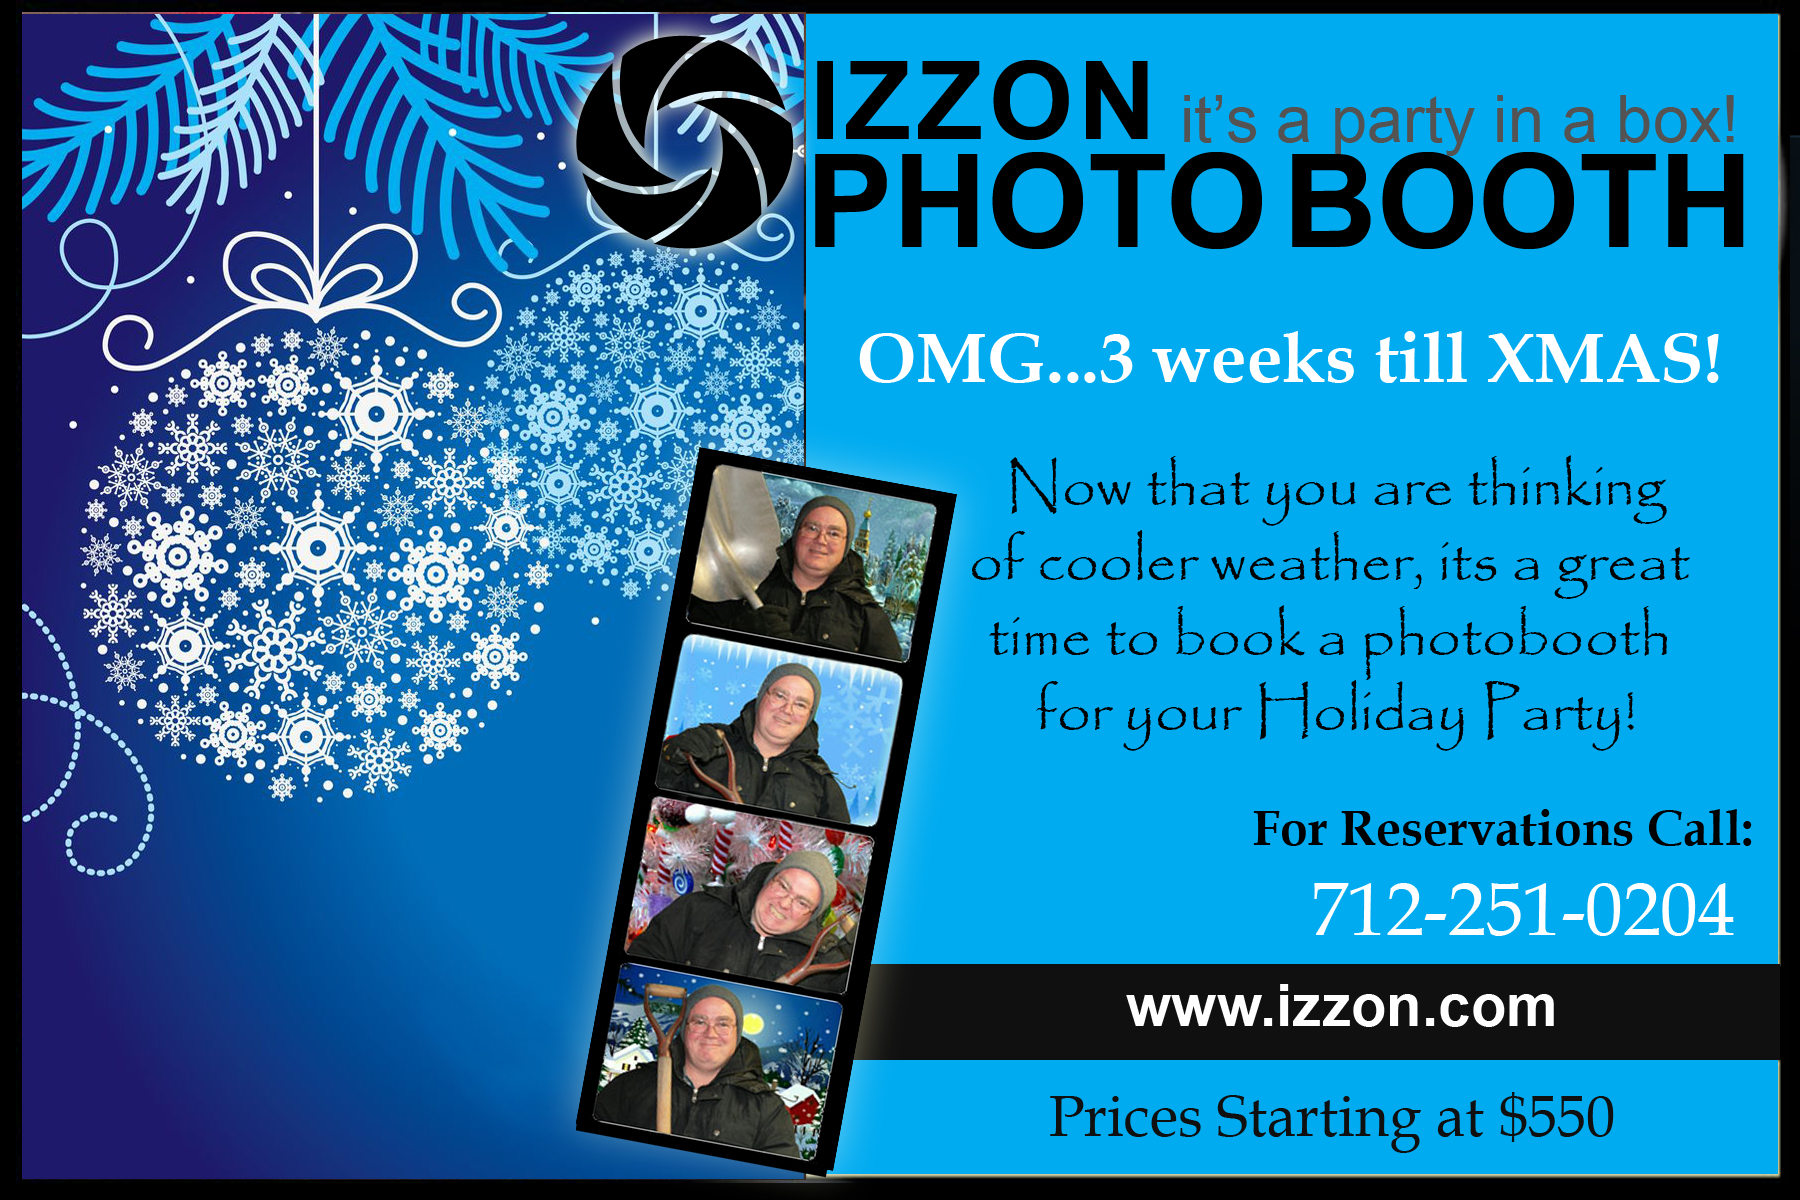 3 weeks until xmas book the izzon photobooth for your holiday party izzonpostcard 3 weeks til christmas - How Much Time Till Christmas